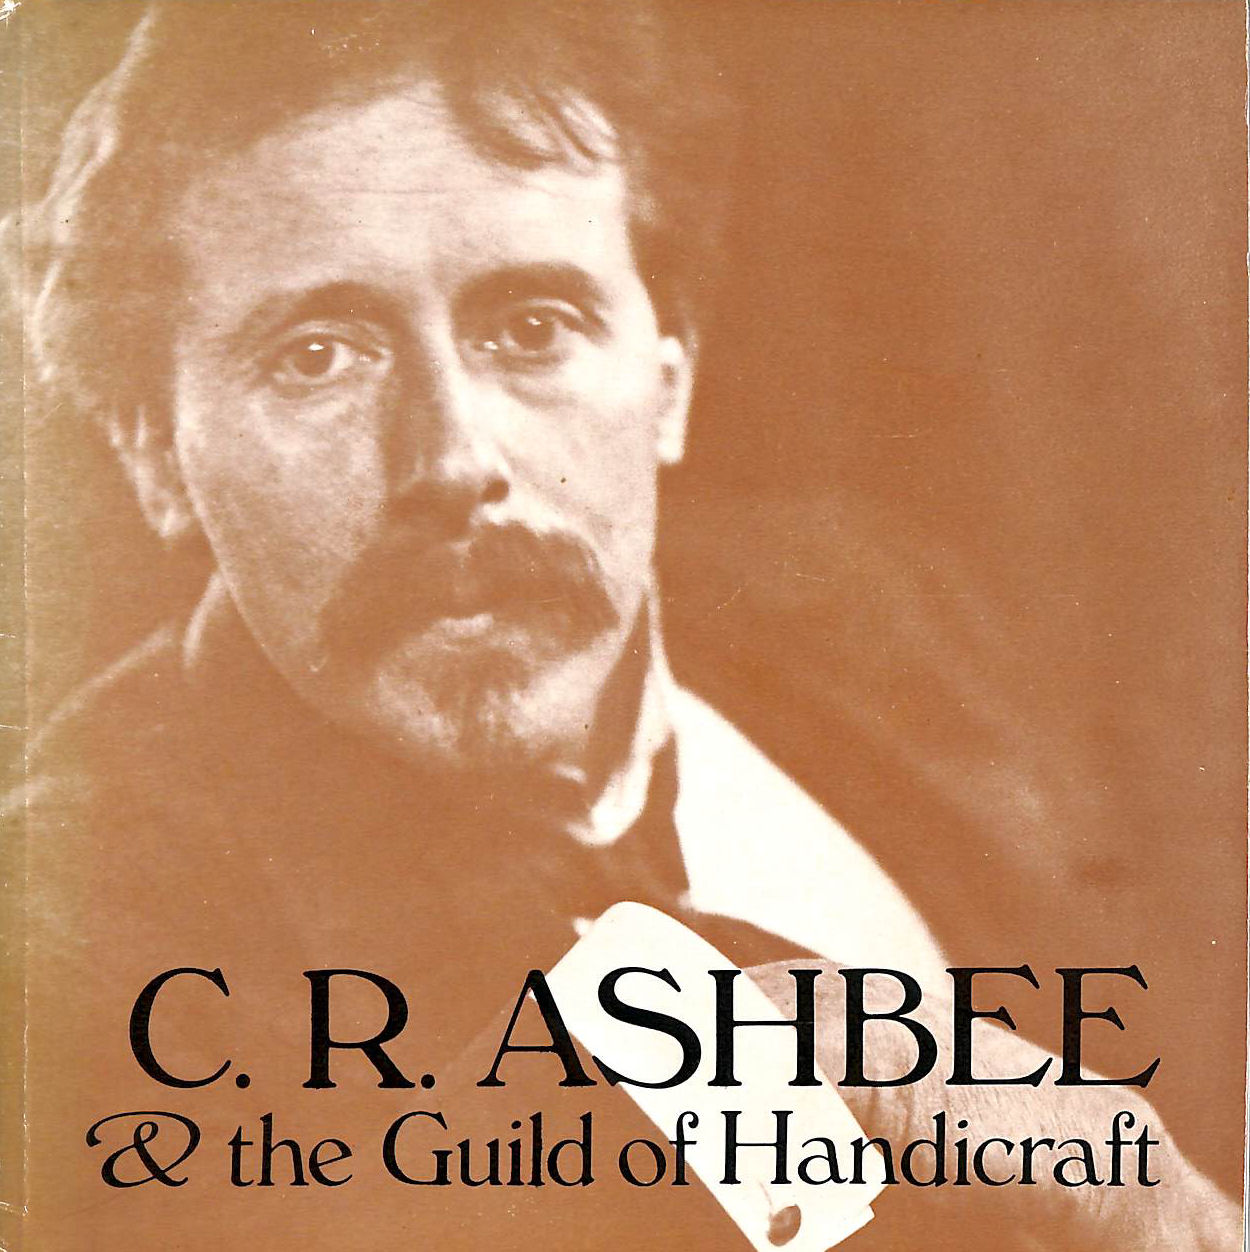 Image for C. R. Ashbee and the Guild of Handicraft.